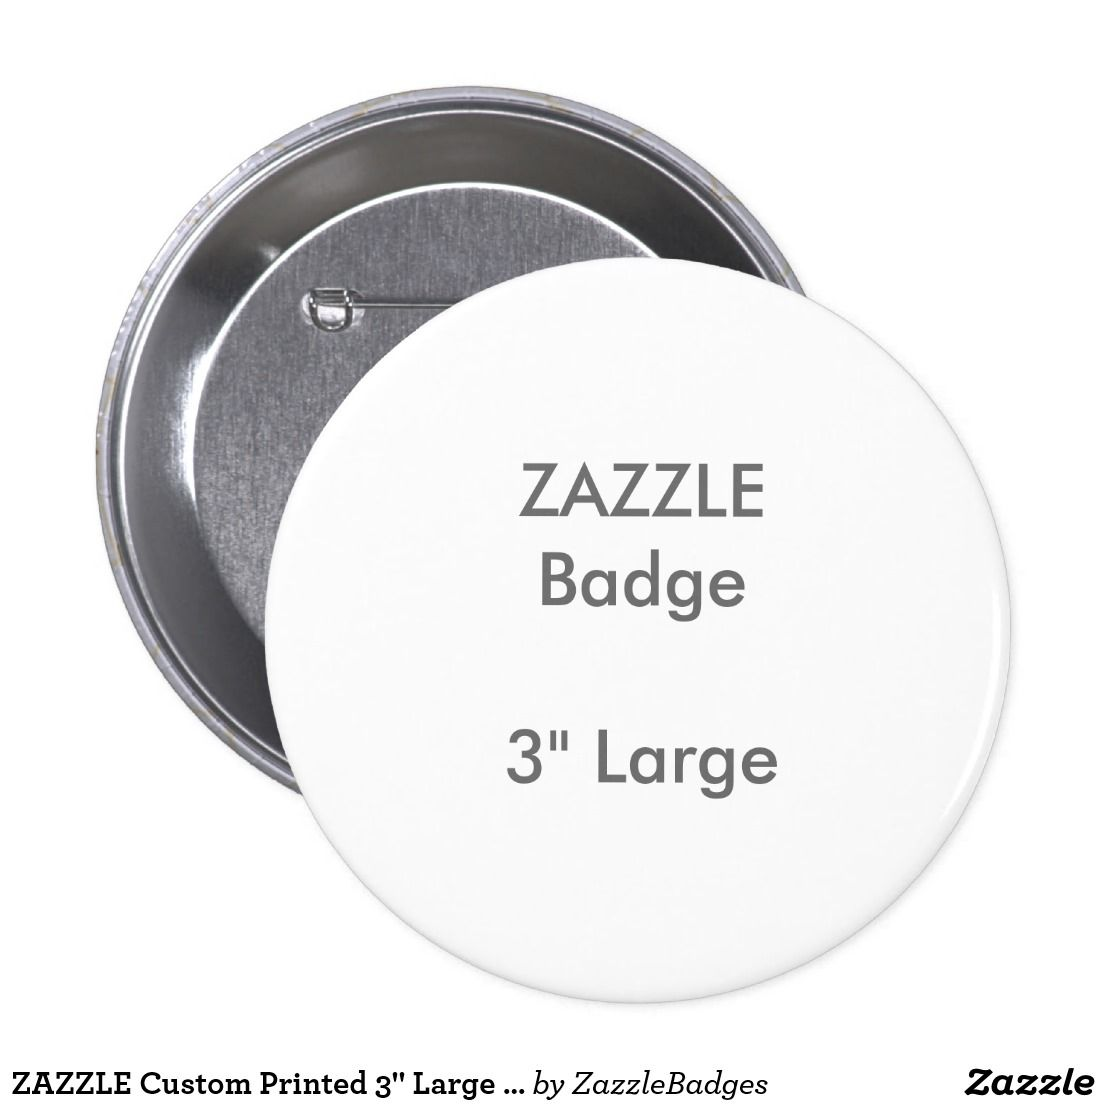 Zazzle t shirt design template - Zazzle Custom Printed 3 Large Round Badge